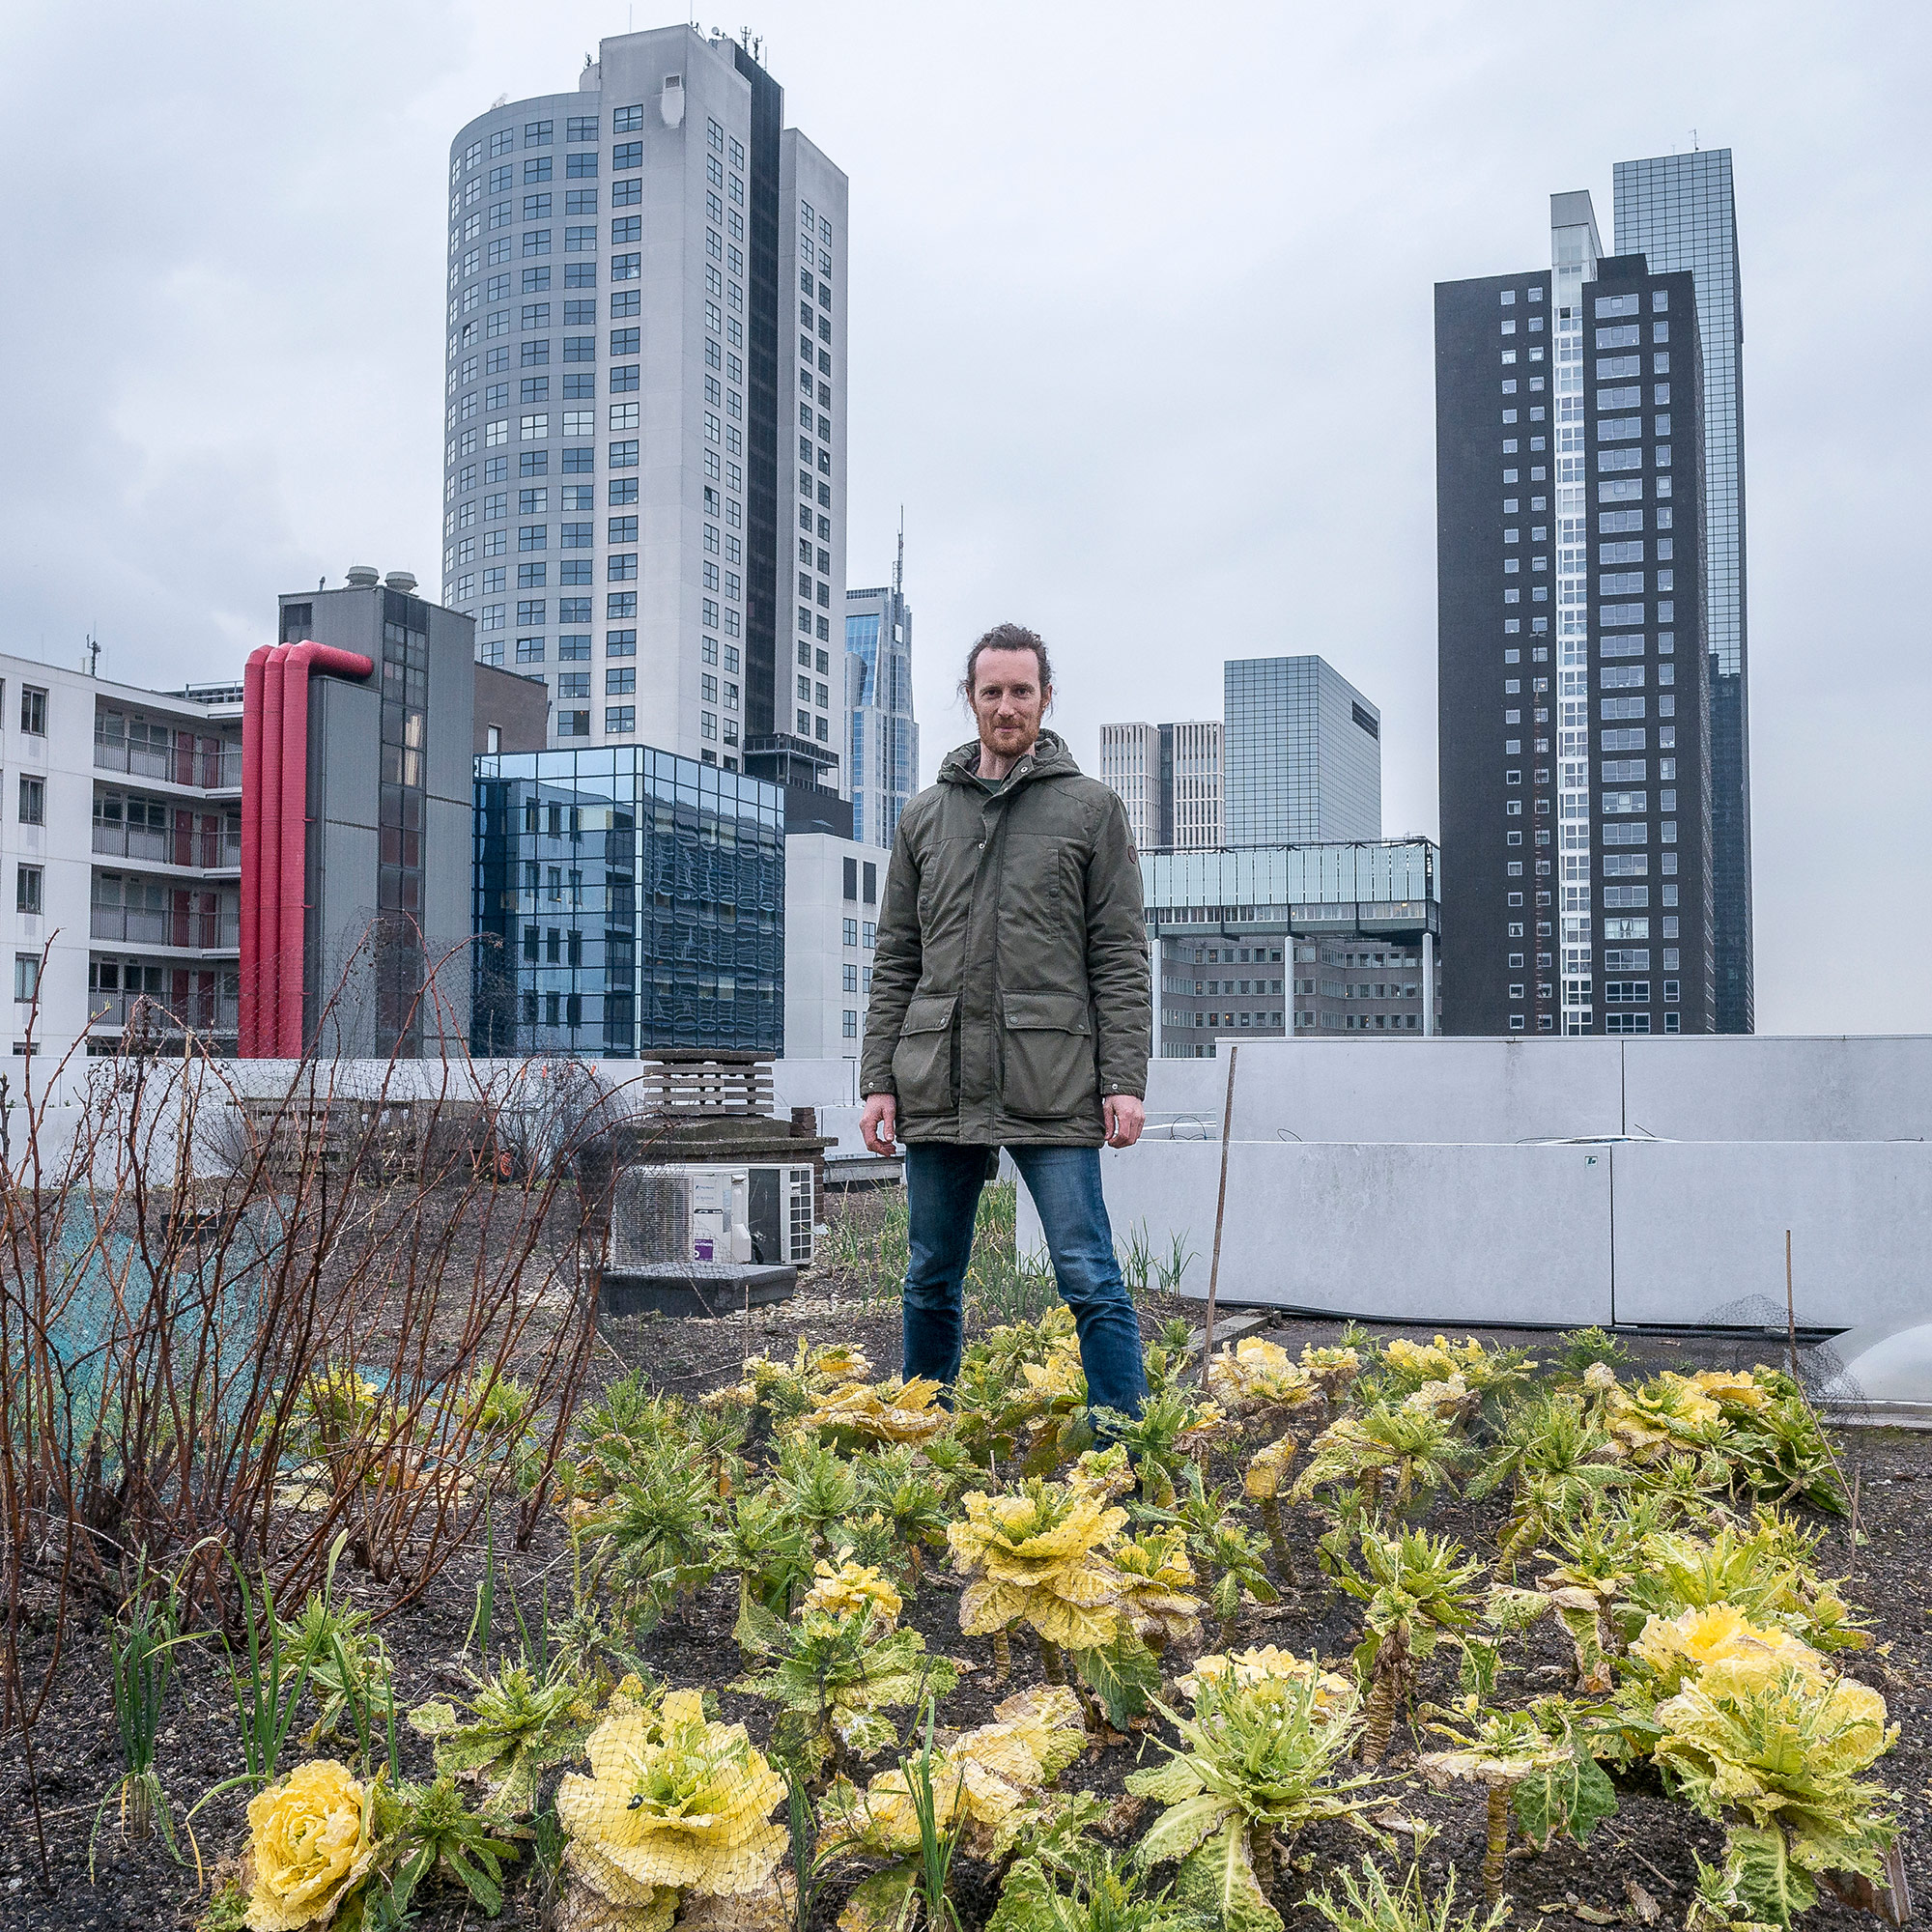 Wouter Bauman is a beekeeper and rooftop farmer at Dakakker (RoofAcre), the first and biggest city agricultural roof of Europe. It's located atop the Schieblock building in downtown Rotterdam. (Photo by Joris van Gennip/GroundTruth)